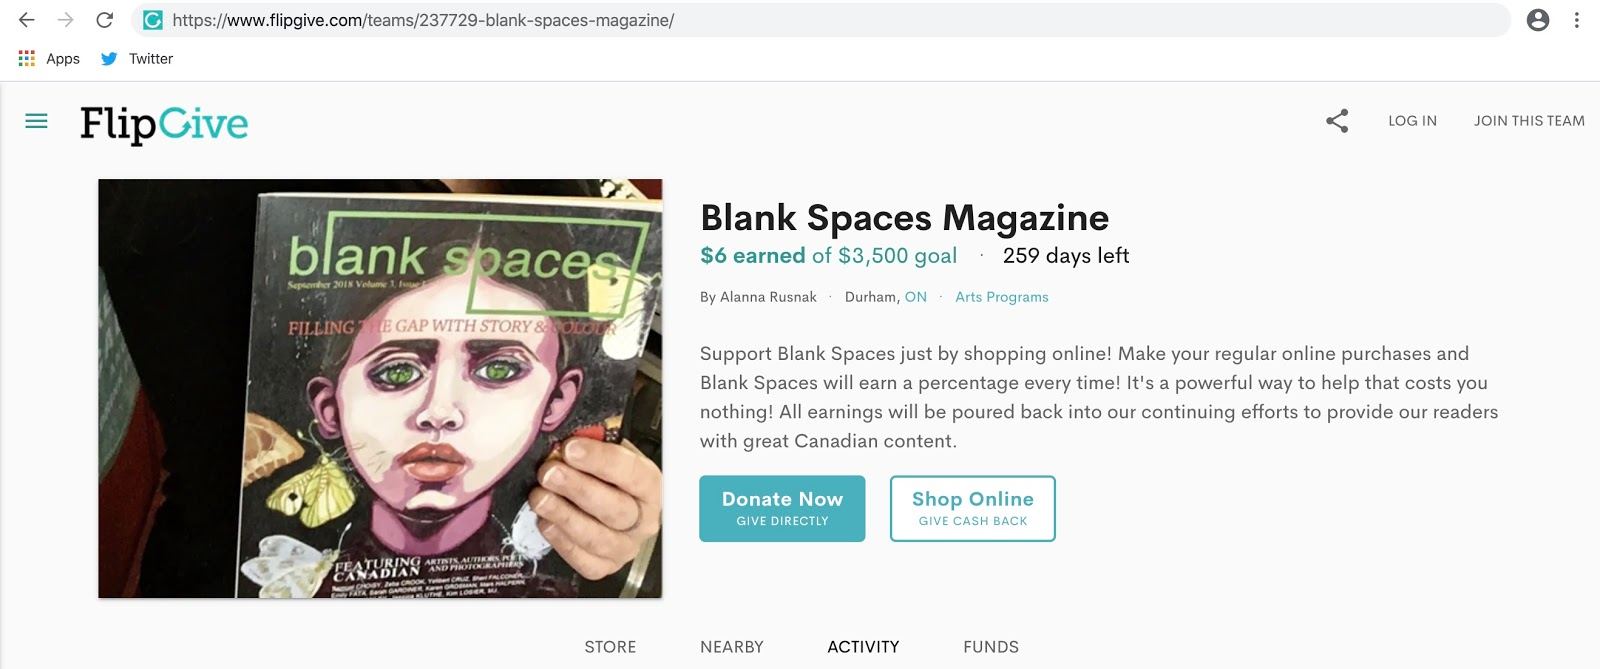 https://www.flipgive.com/teams/237729-blank-spaces-magazine/